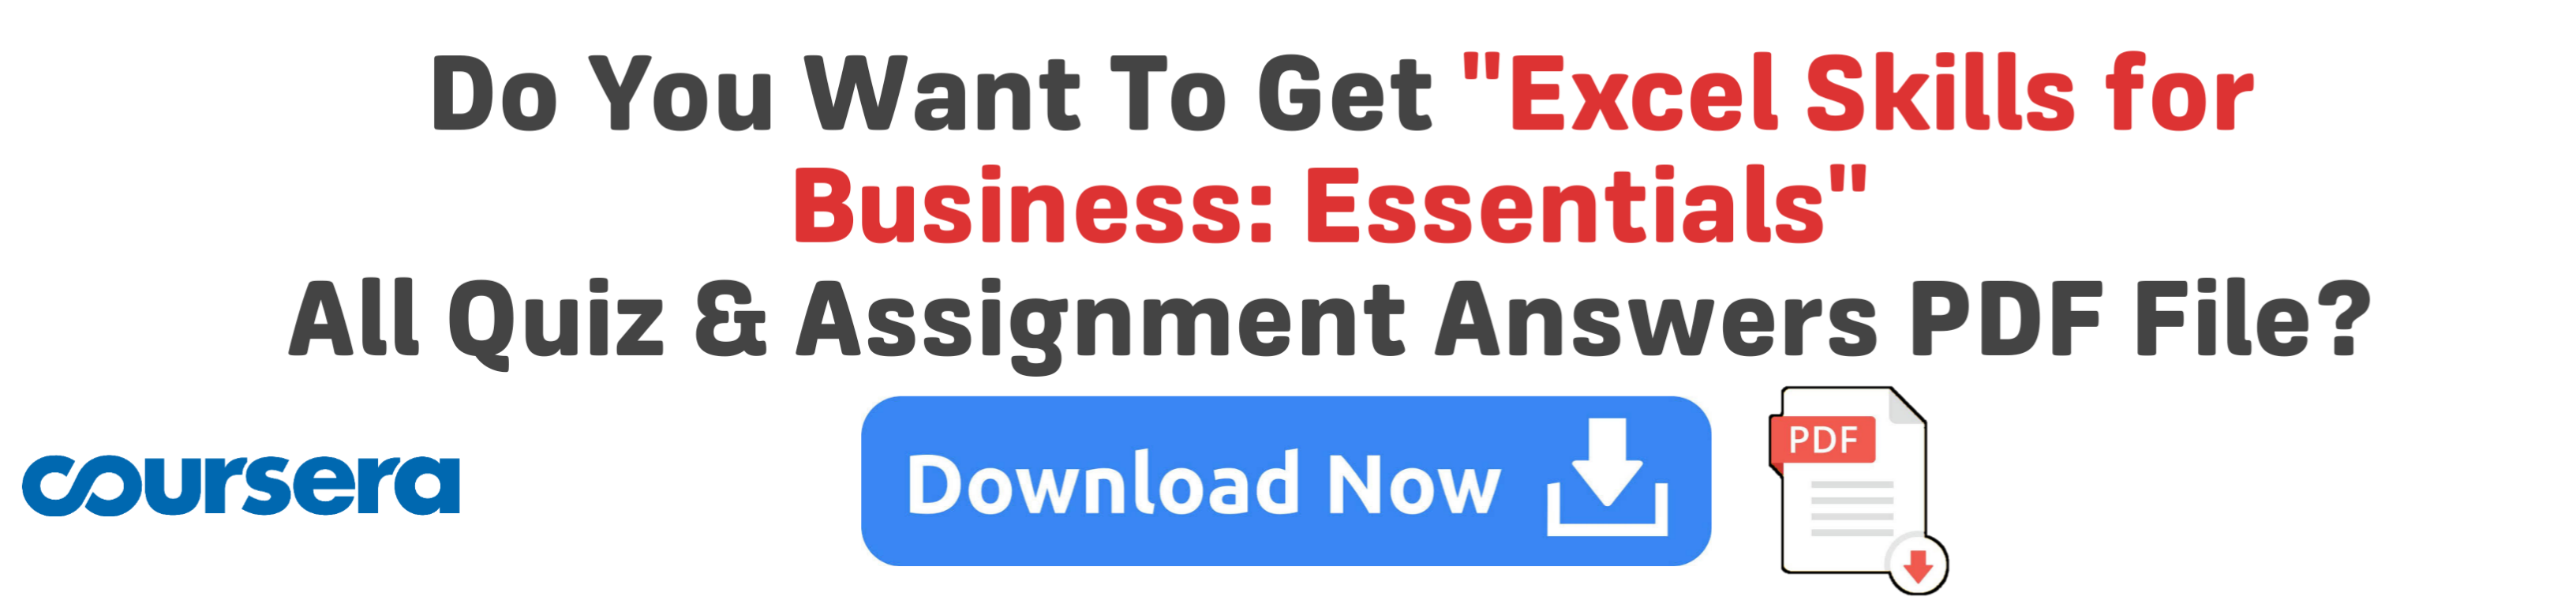 excel skills for business essentials coursera answers